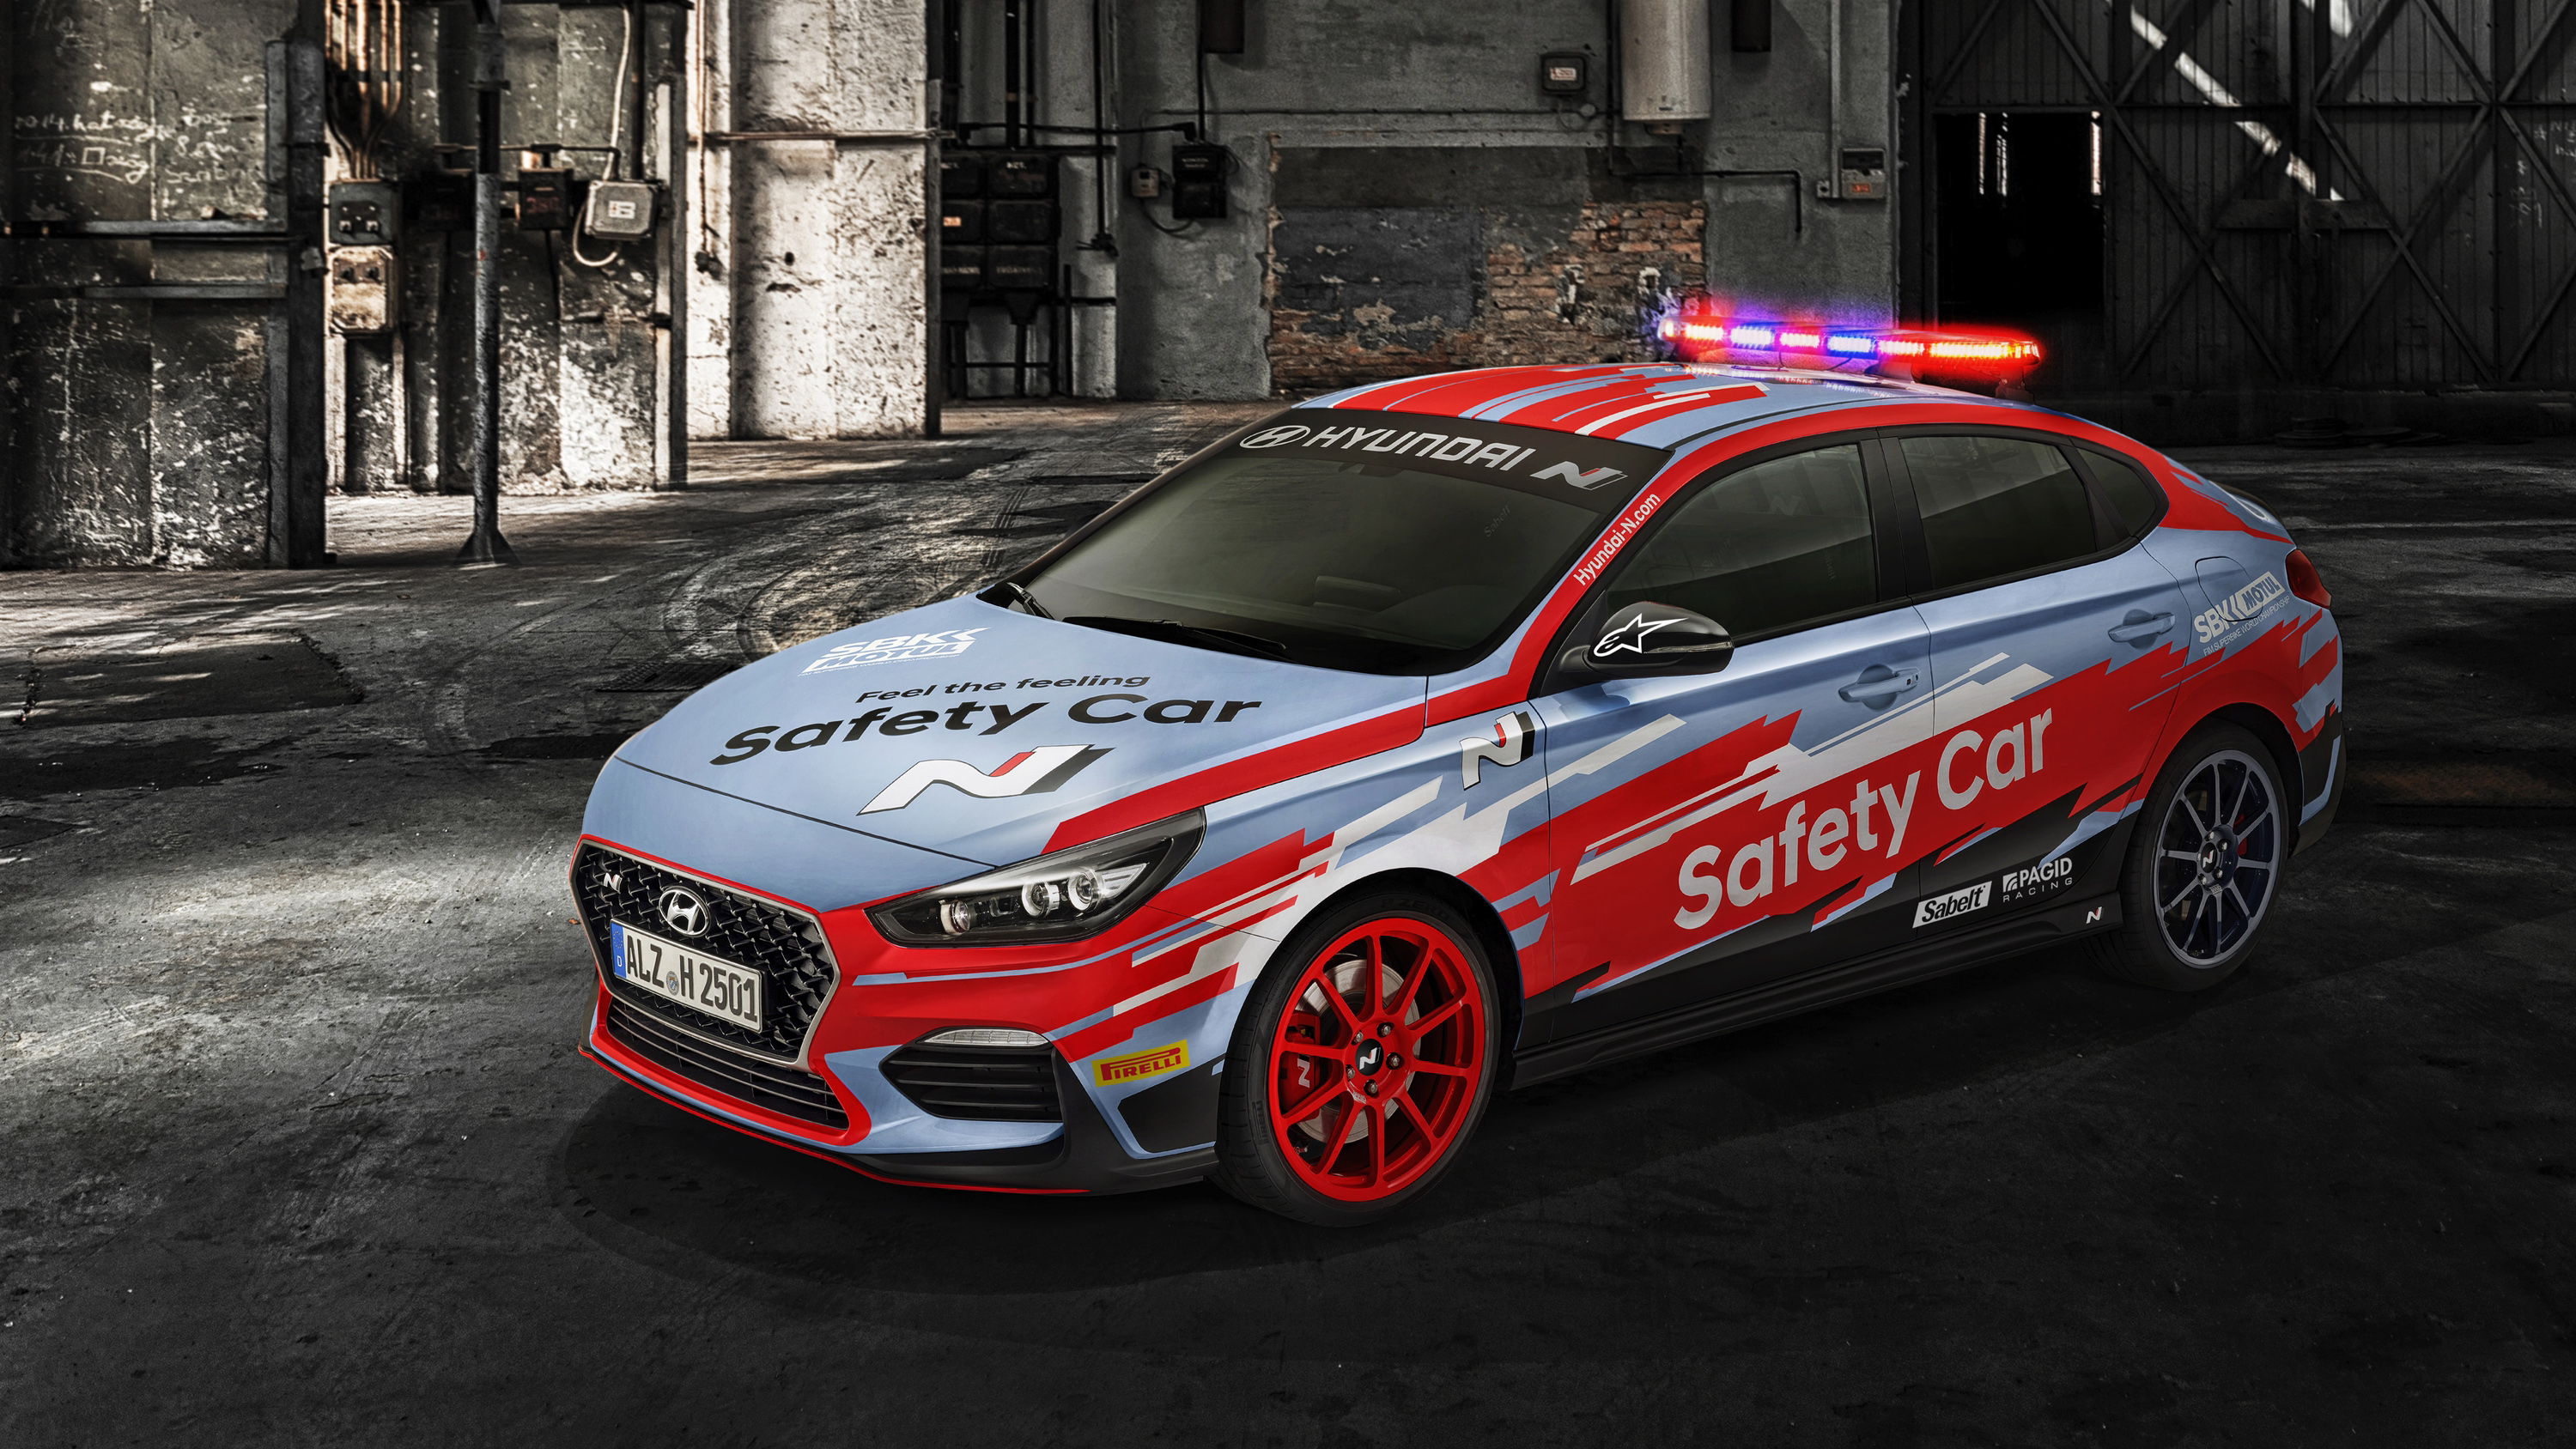 hyundai i30 fastback n sbk safety car 2019 wallpaper hd. Black Bedroom Furniture Sets. Home Design Ideas